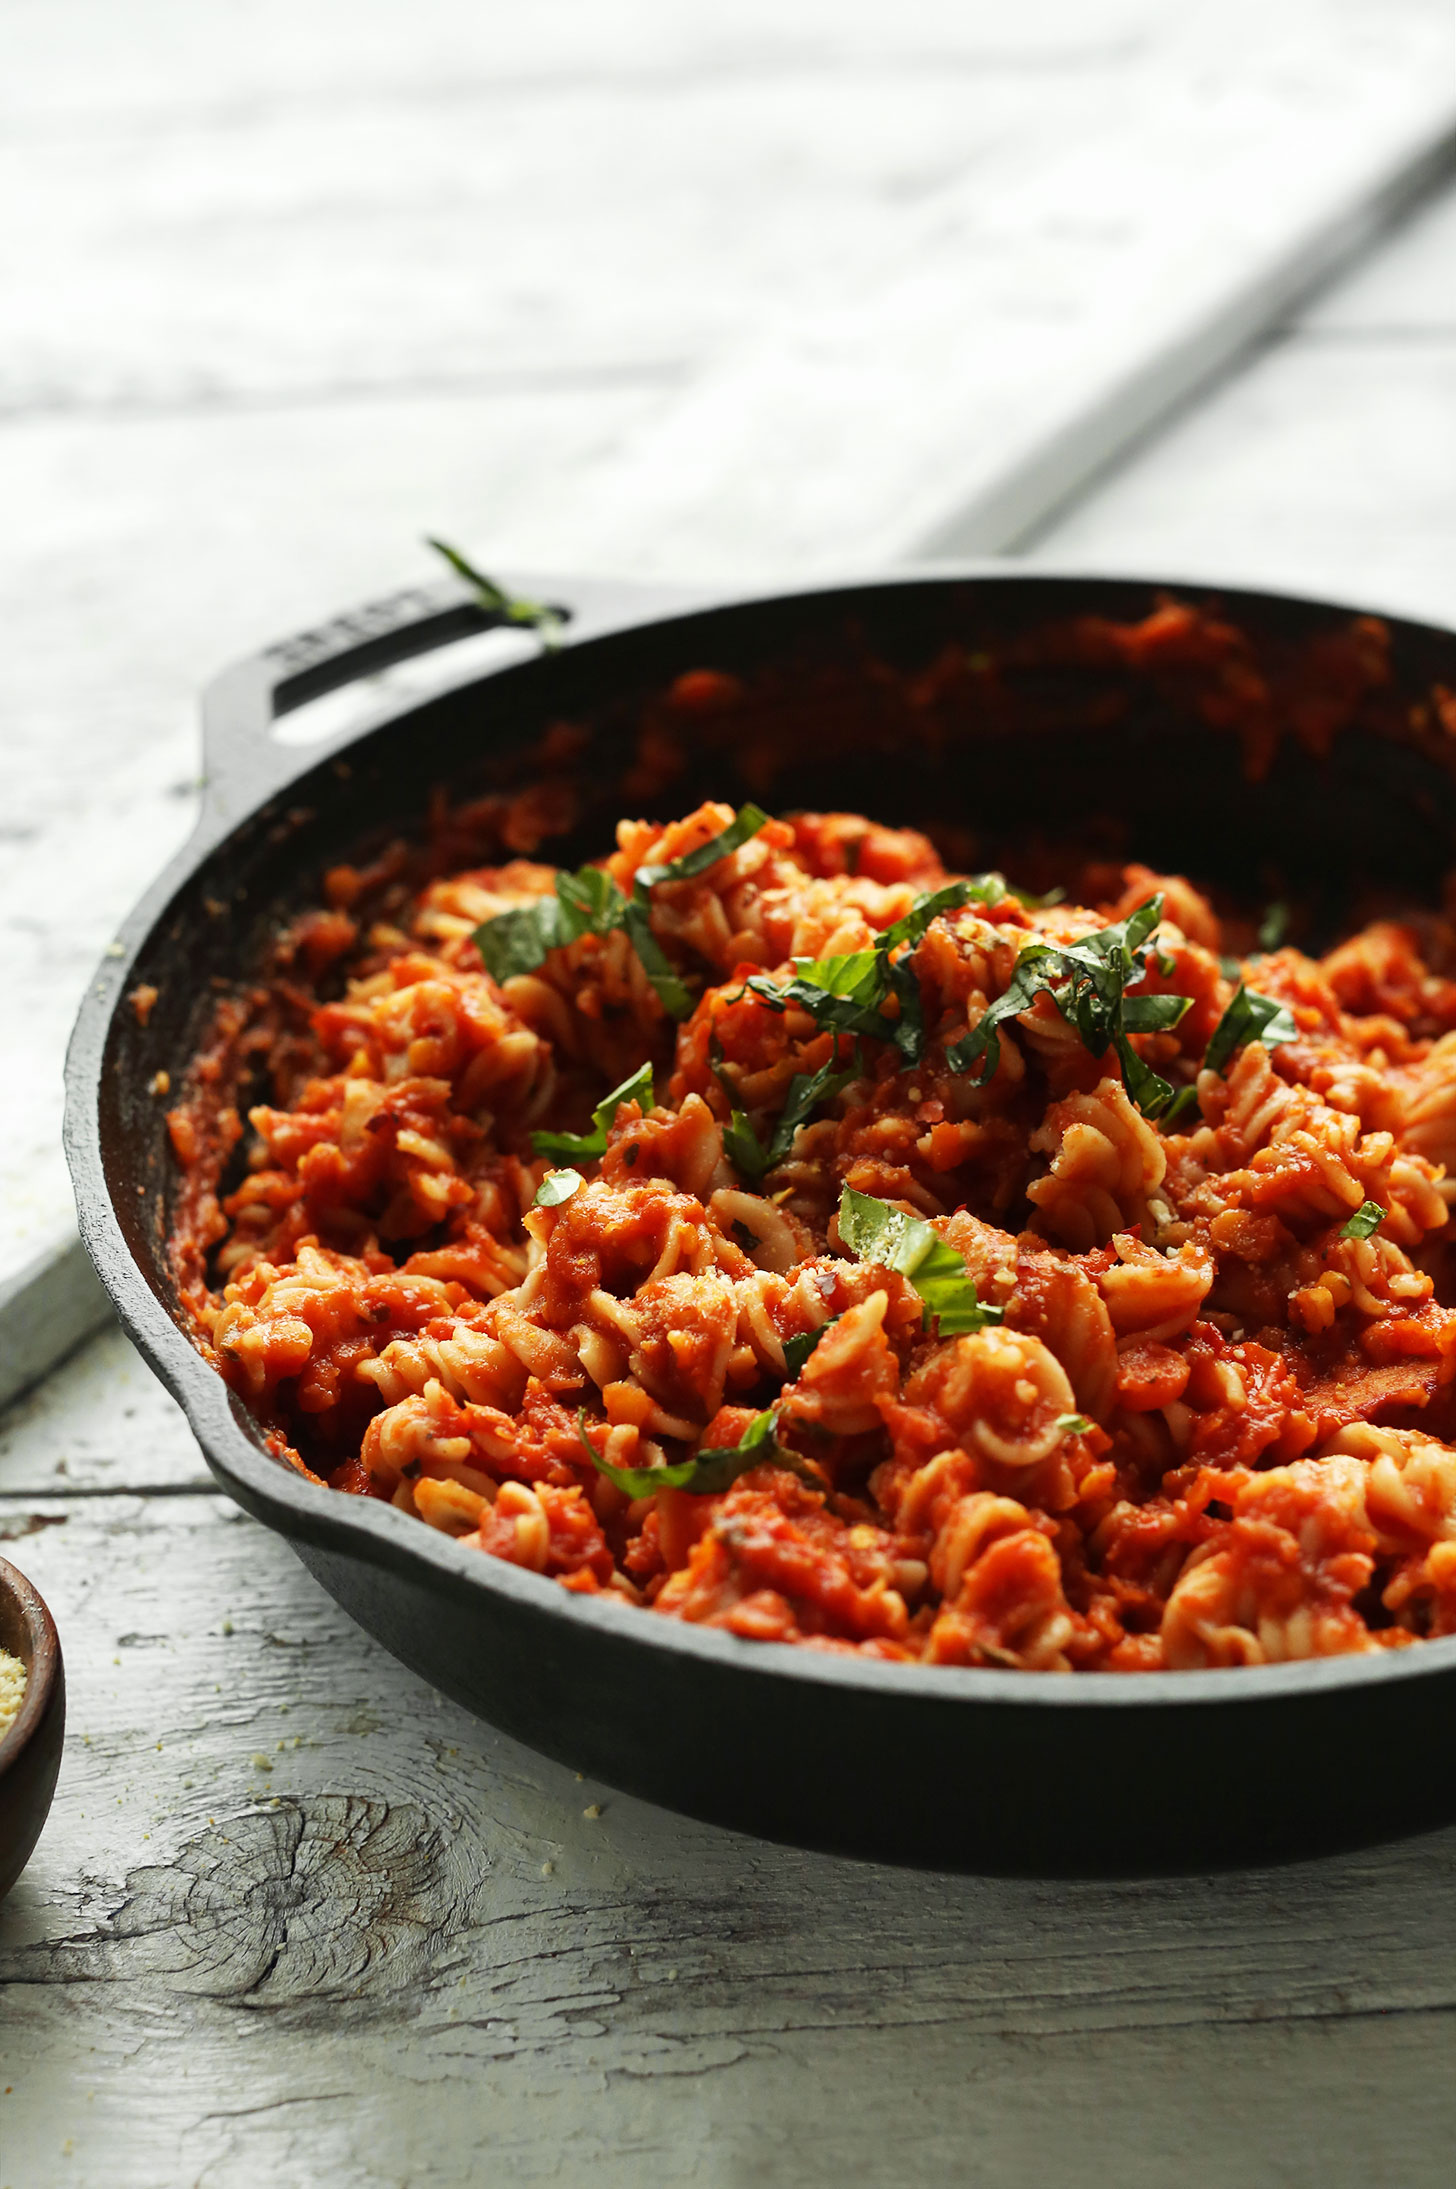 Cast-iron skillet filled with our recipe for Spicy Red Pasta with Lentils